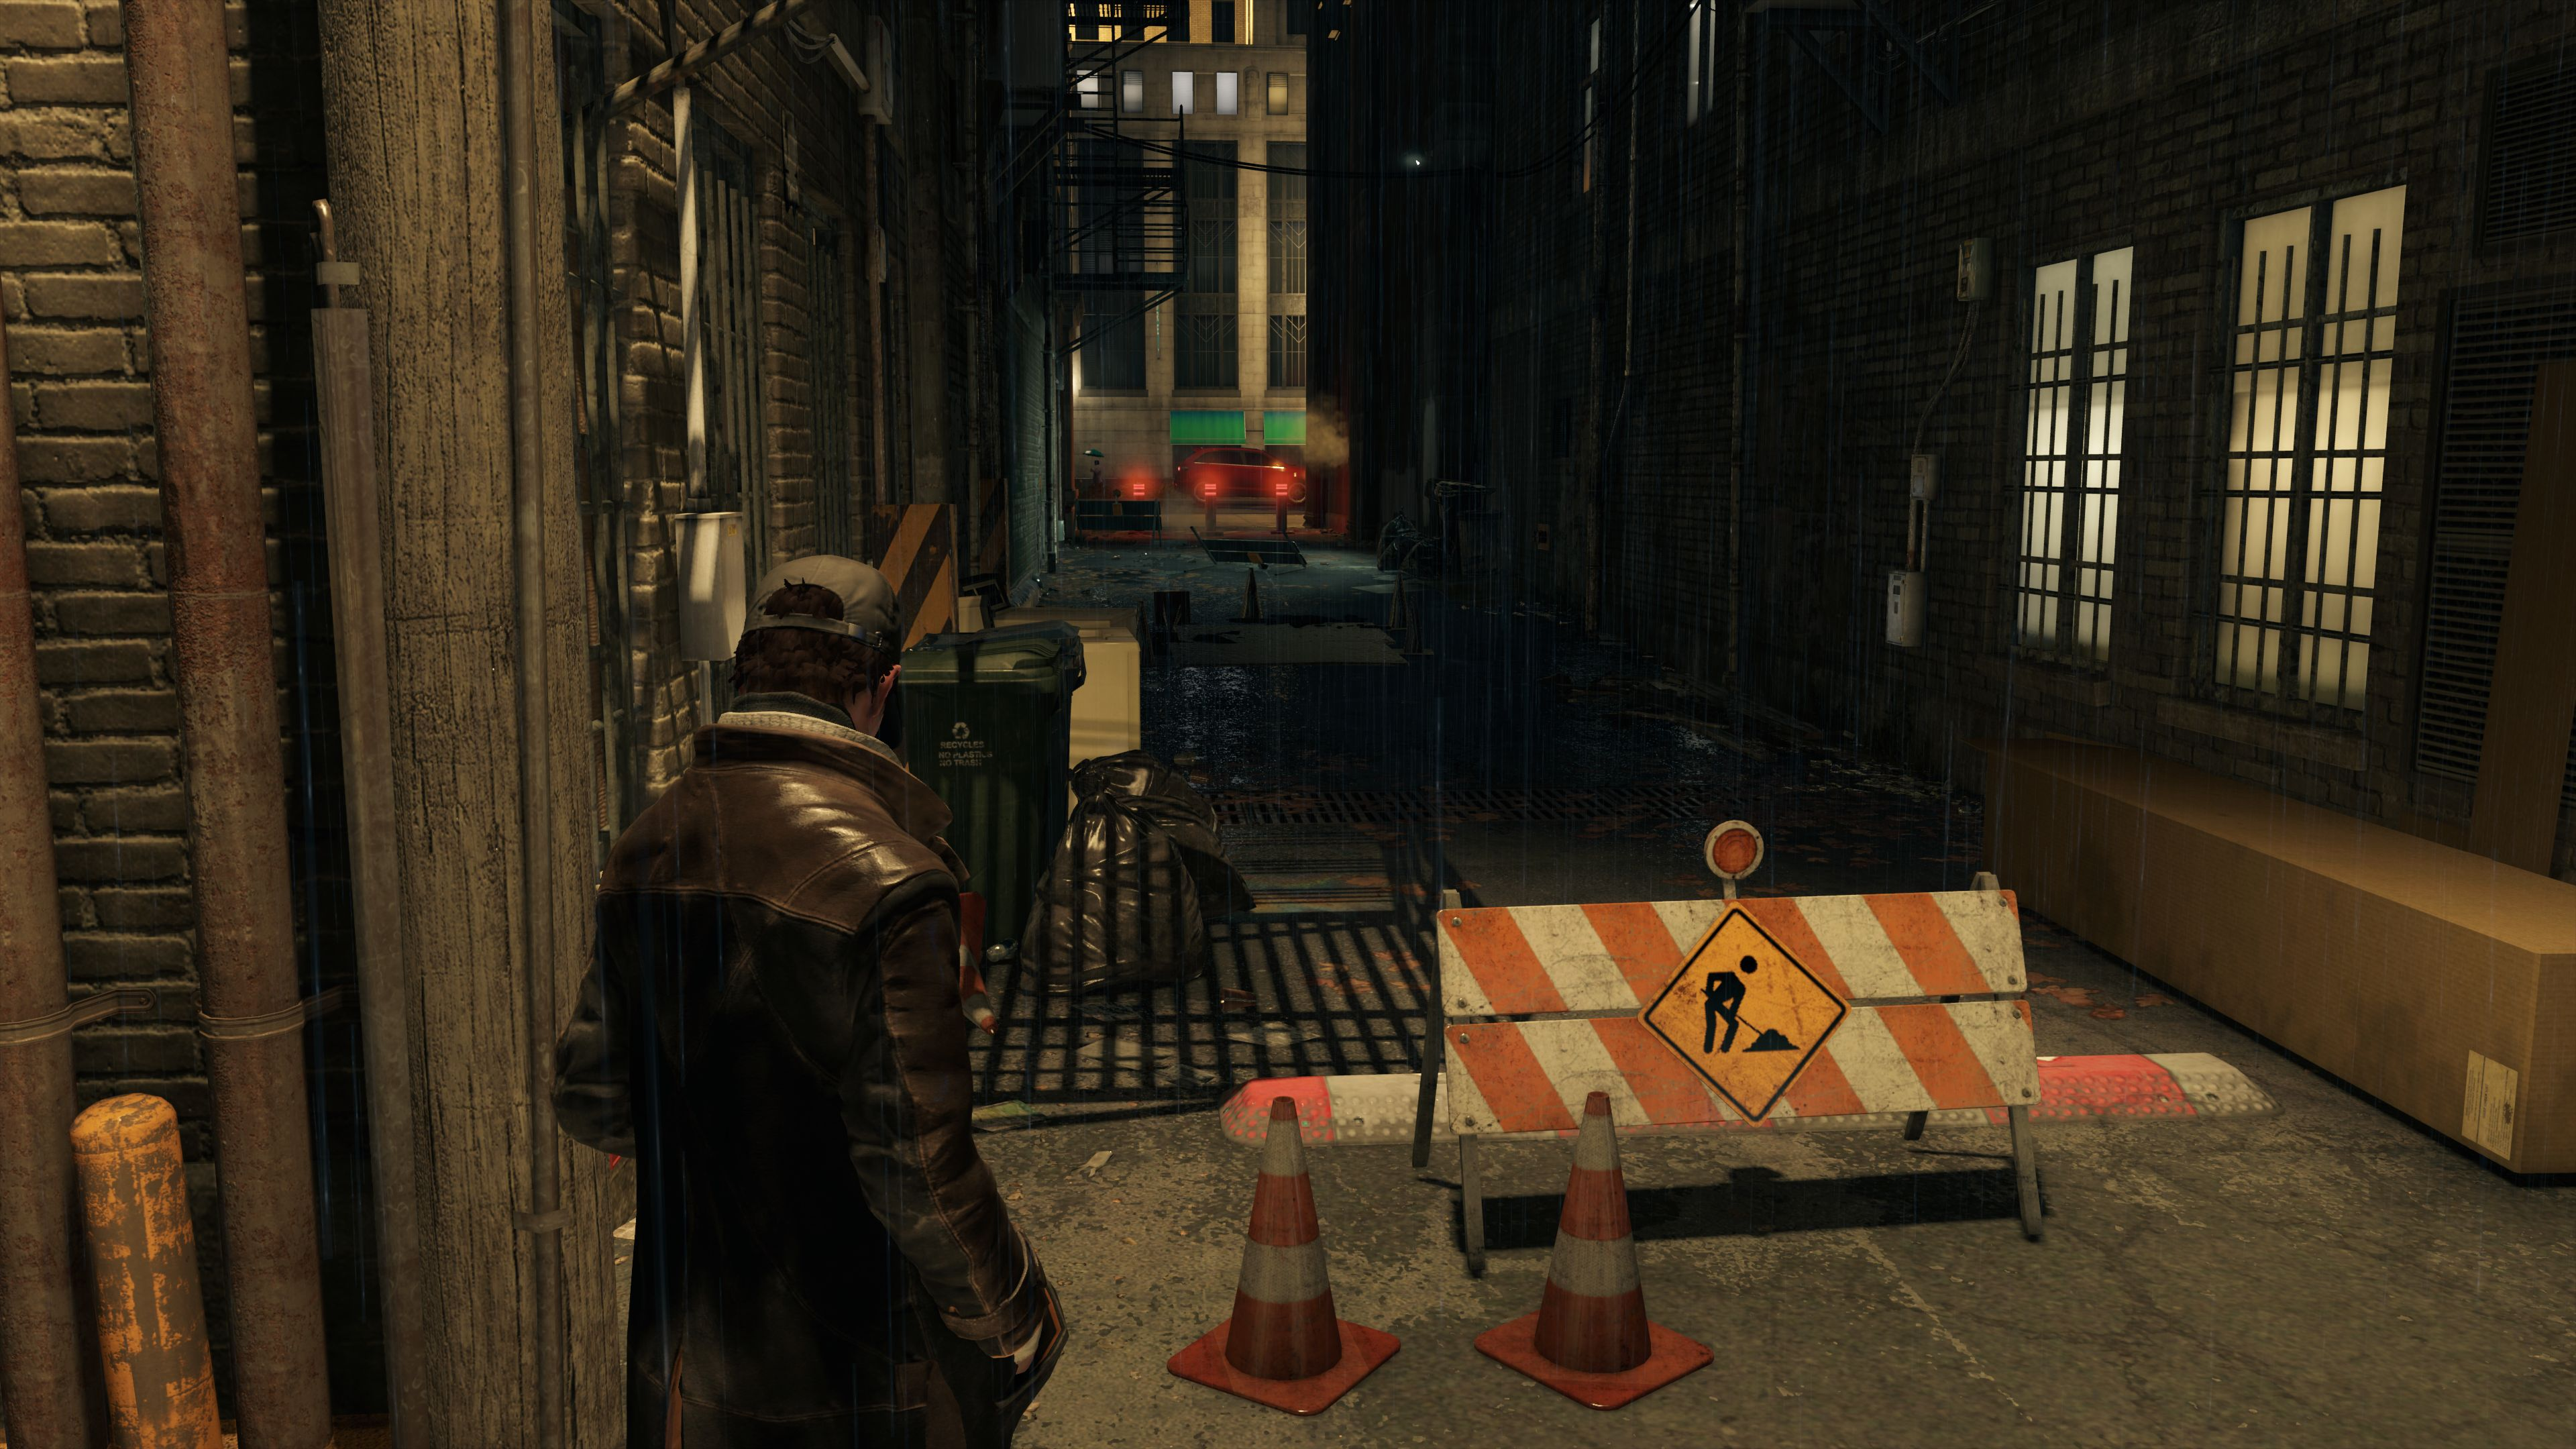 Watch dogs ps4 xbox one pc quelle version choisir - Quelle console choisir ps4 ou xbox one ...